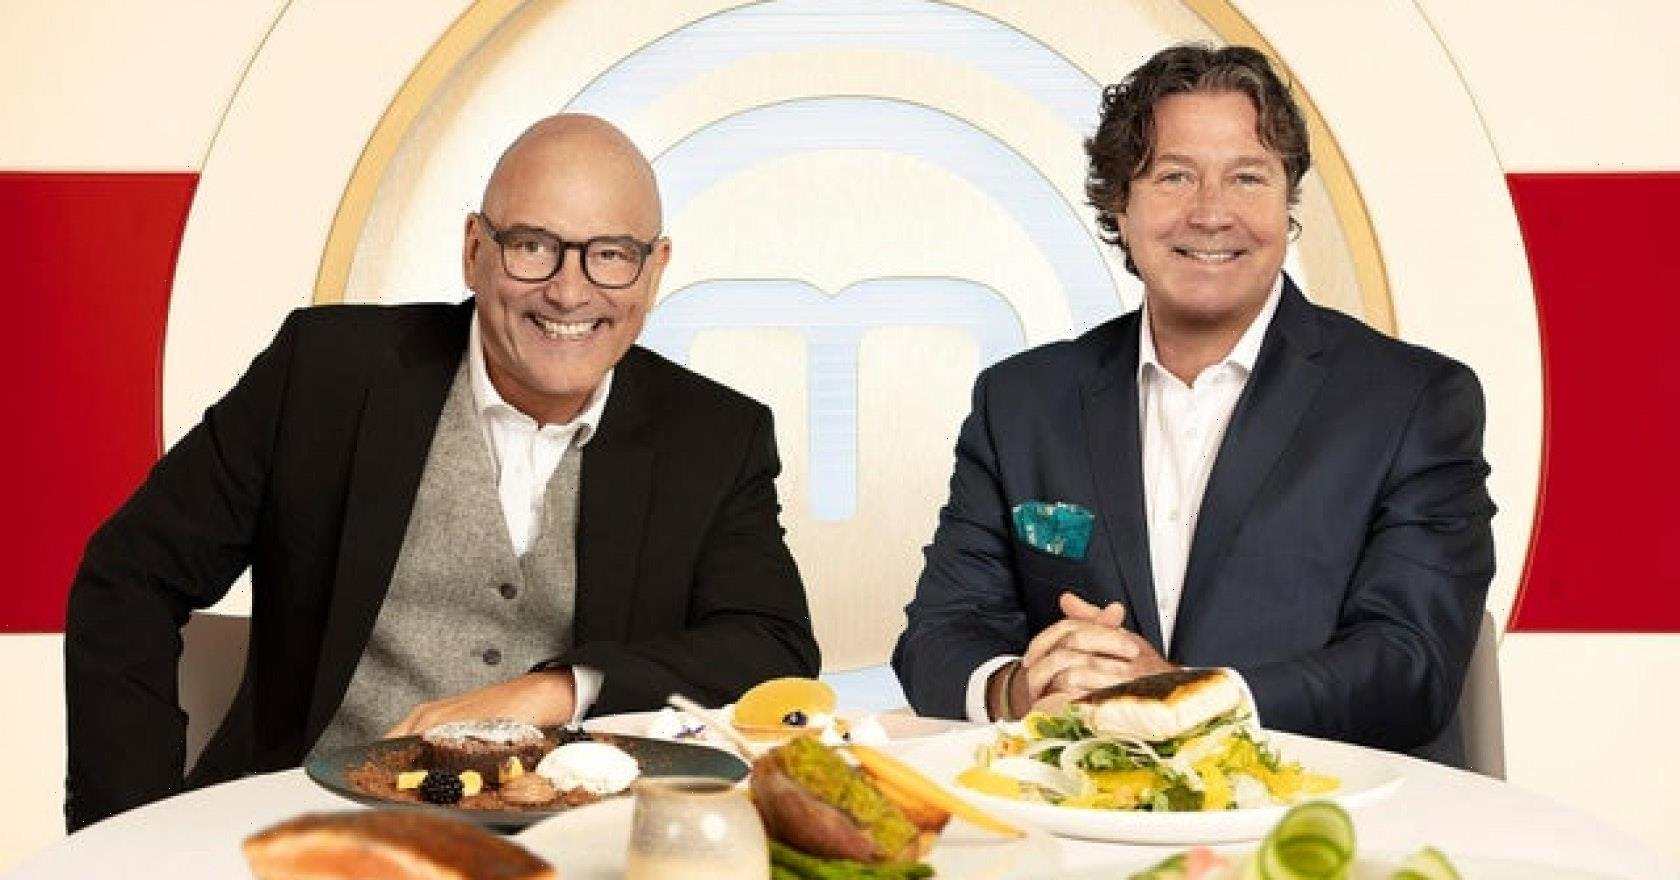 The Celebrity MasterChef 2021 line-up has just been announced